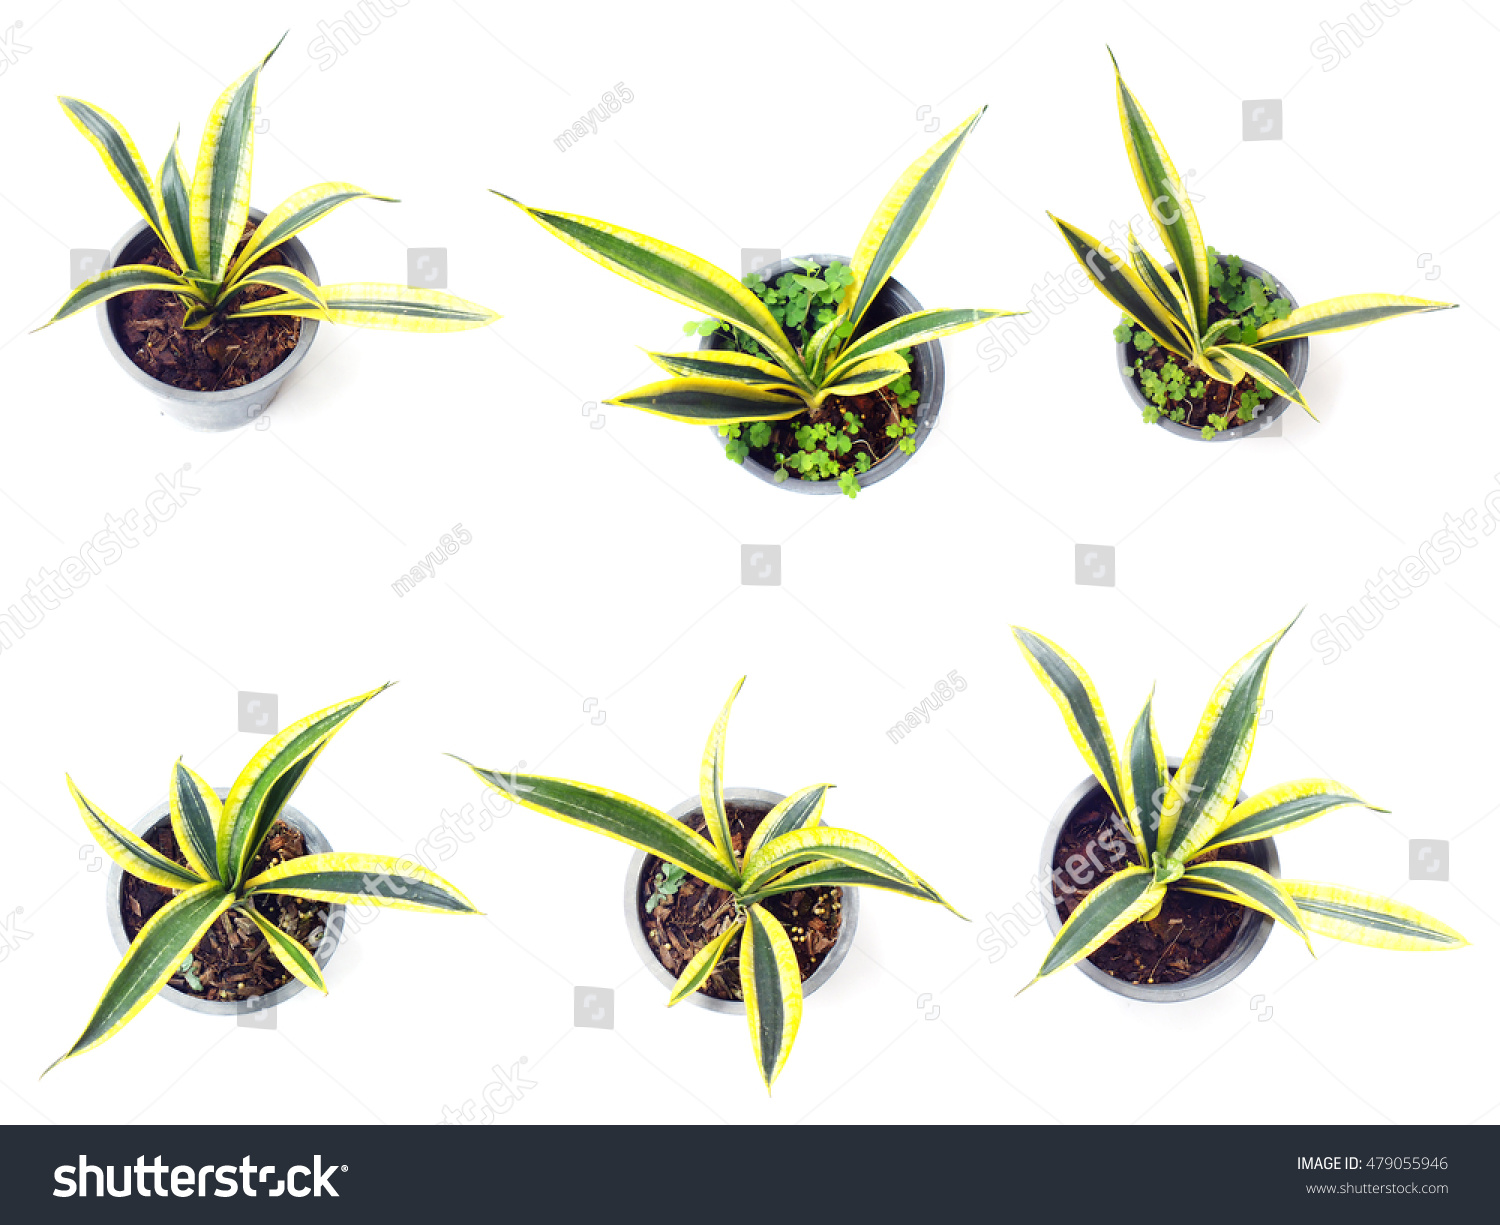 Cheap Fresh Of Green House Plants Top View Isolated On White Background With